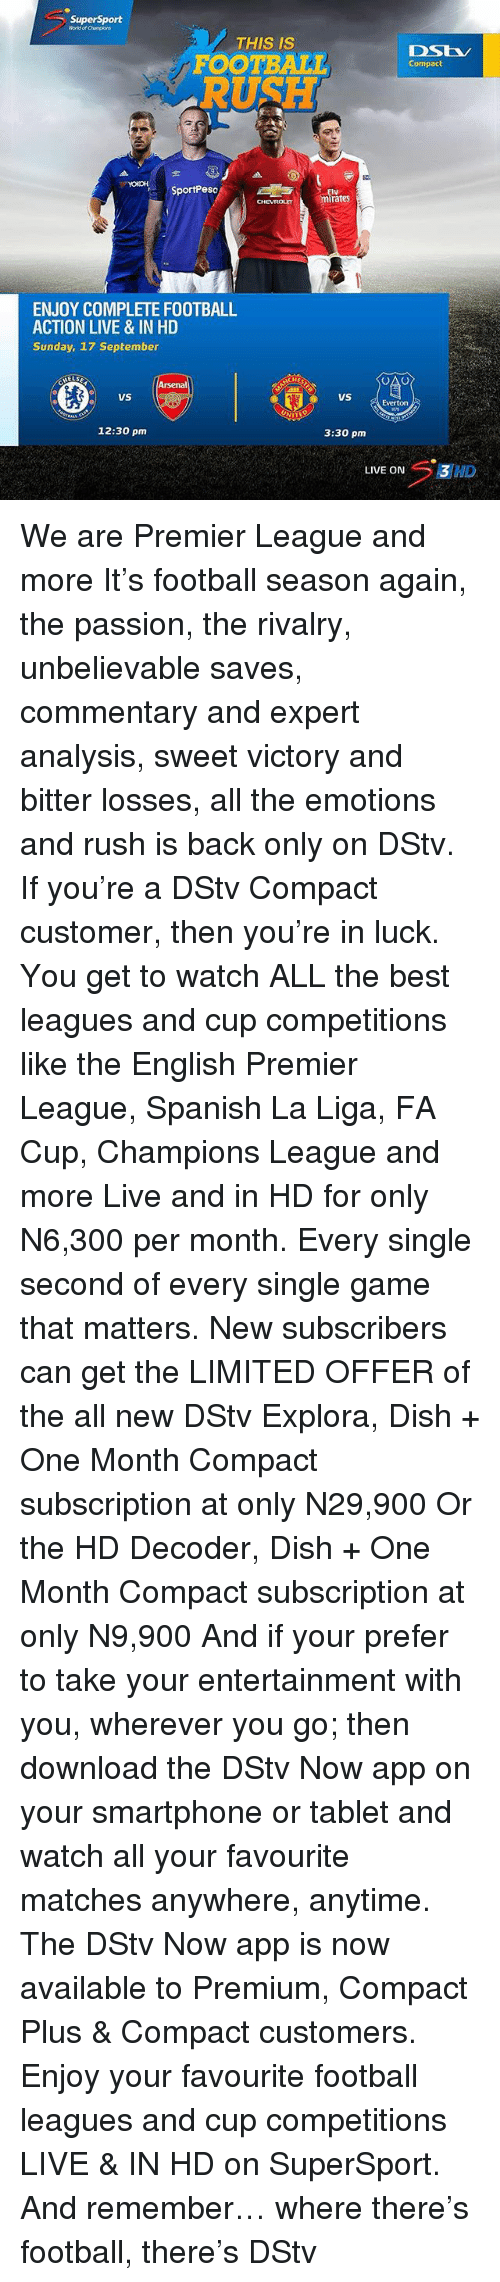 English Premier League: SuperSport  World of Chumpions  THIS IS  DS  Compact  SportPeso  mirates  ENJOY COMPLETE FOOTBALL  ACTION LIVE & IN HD  Sunday, 17 September  CHE  Arsenal  4223  uS  Everton  12:30 pm  3:30 pm  LIVE ON 3HD We are Premier League and more It's football season again, the passion, the rivalry, unbelievable saves, commentary and expert analysis, sweet victory and bitter losses, all the emotions and rush is back only on DStv. If you're a DStv Compact customer, then you're in luck. You get to watch ALL the best leagues and cup competitions like the English Premier League, Spanish La Liga, FA Cup, Champions League and more Live and in HD for only N6,300 per month. Every single second of every single game that matters. New subscribers can get the LIMITED OFFER of the all new DStv Explora, Dish + One Month Compact subscription at only N29,900 Or the HD Decoder, Dish + One Month Compact subscription at only N9,900 And if your prefer to take your entertainment with you, wherever you go; then download the DStv Now app on your smartphone or tablet and watch all your favourite matches anywhere, anytime. The DStv Now app is now available to Premium, Compact Plus & Compact customers. Enjoy your favourite football leagues and cup competitions LIVE & IN HD on SuperSport. And remember… where there's football, there's DStv